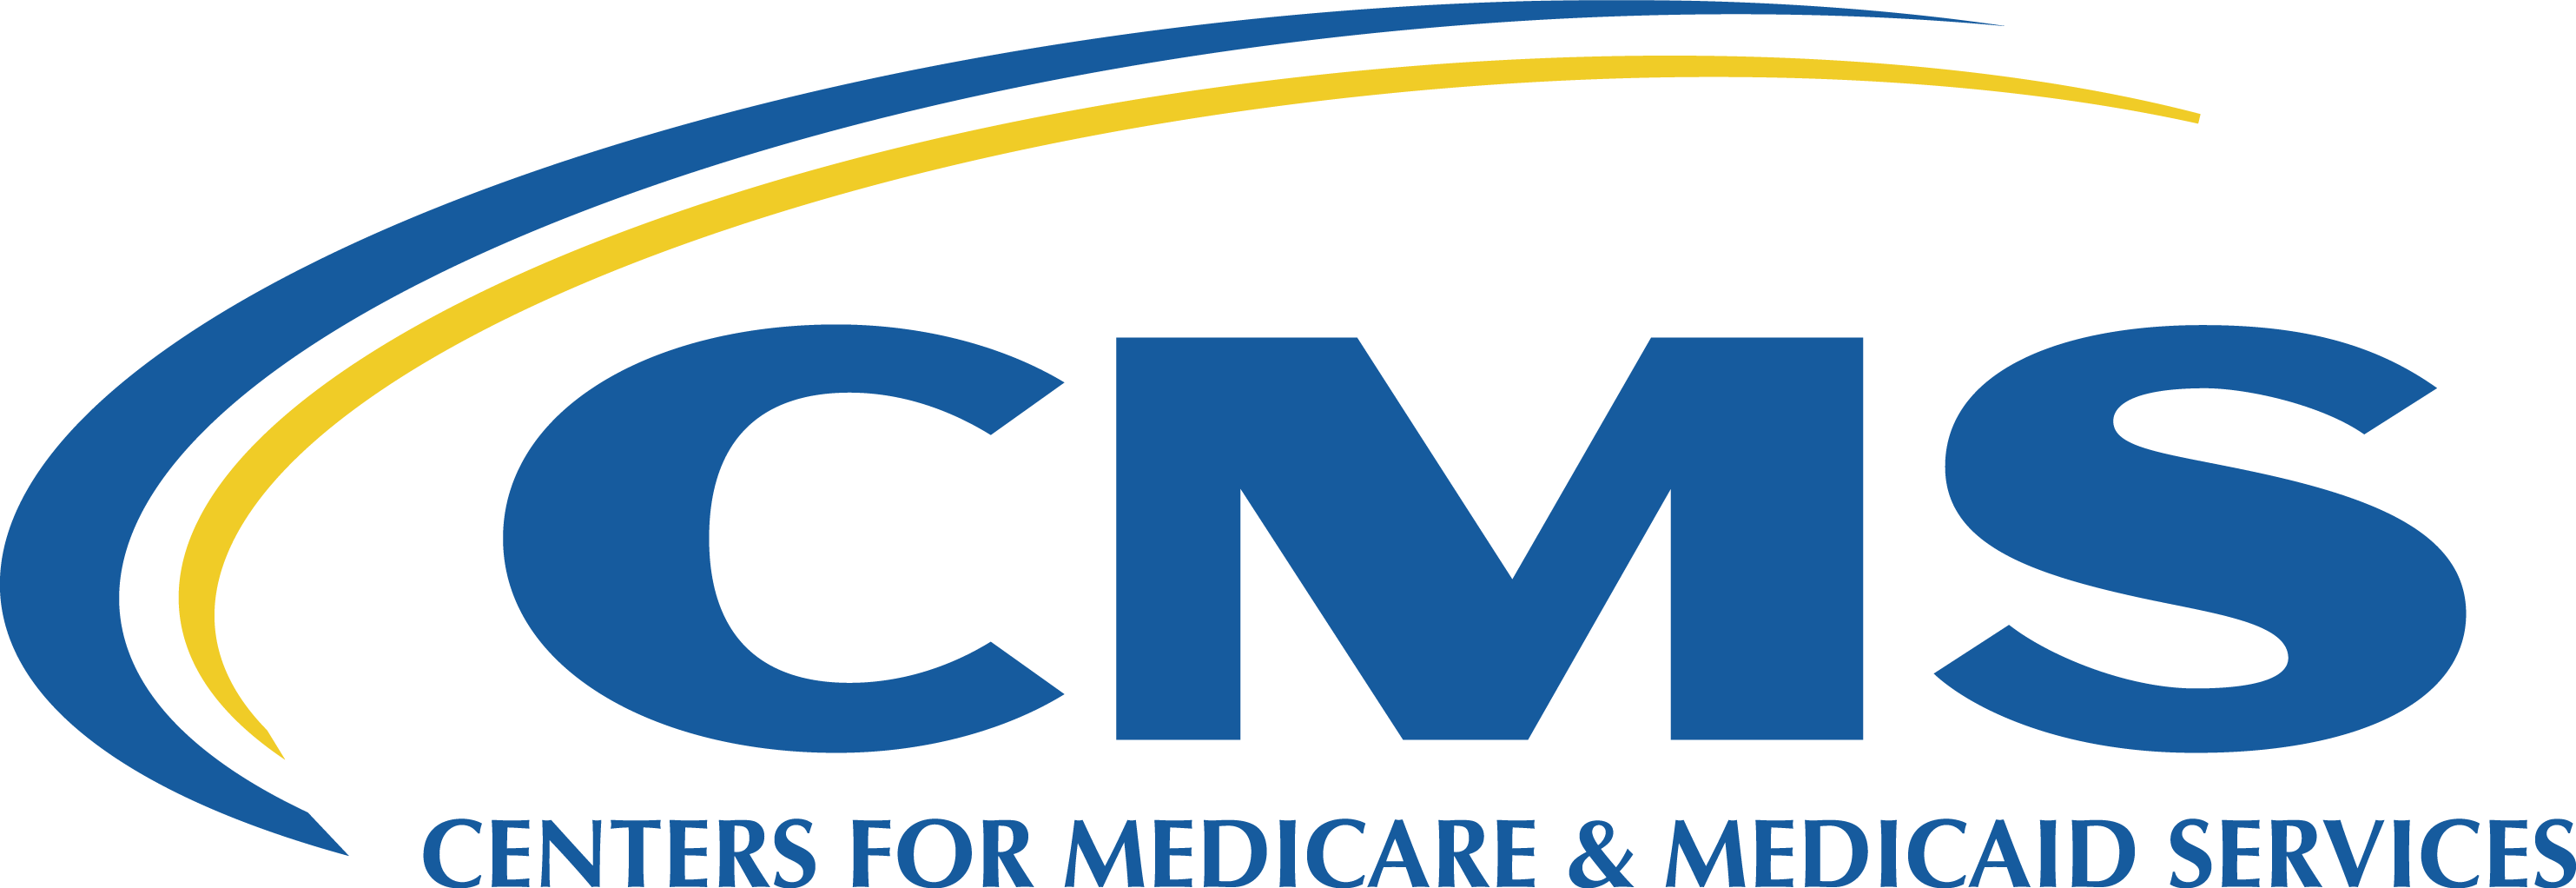 CMS Logo   Centers for Medicare and Medicaid Services png